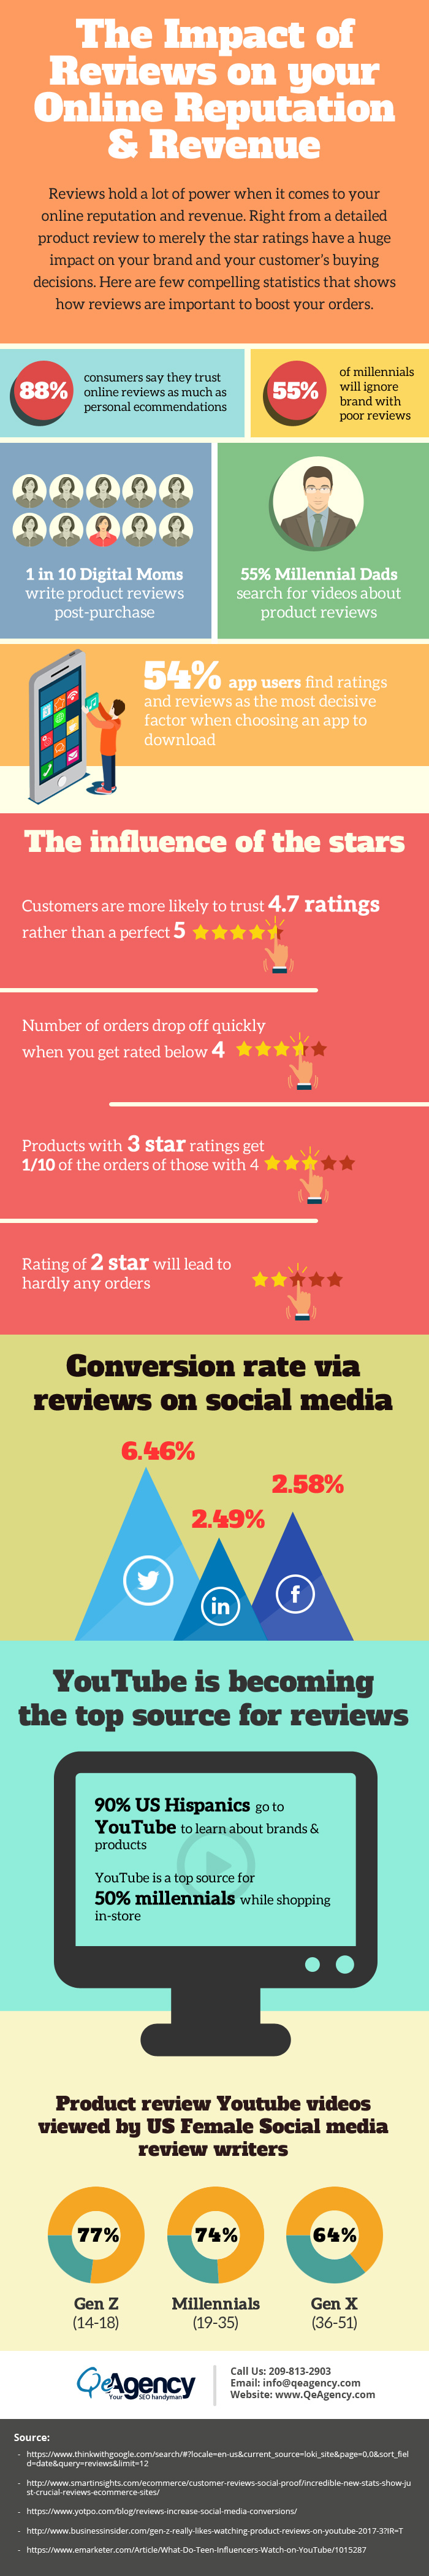 Impact of Reviews on your online reputation and revenue